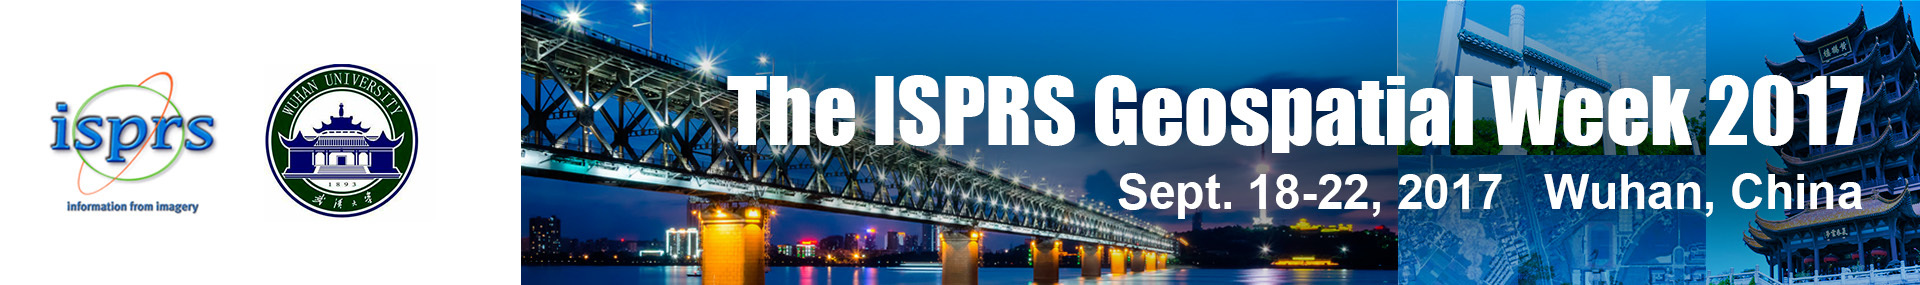 The ISPRS Geospatial Week 2017